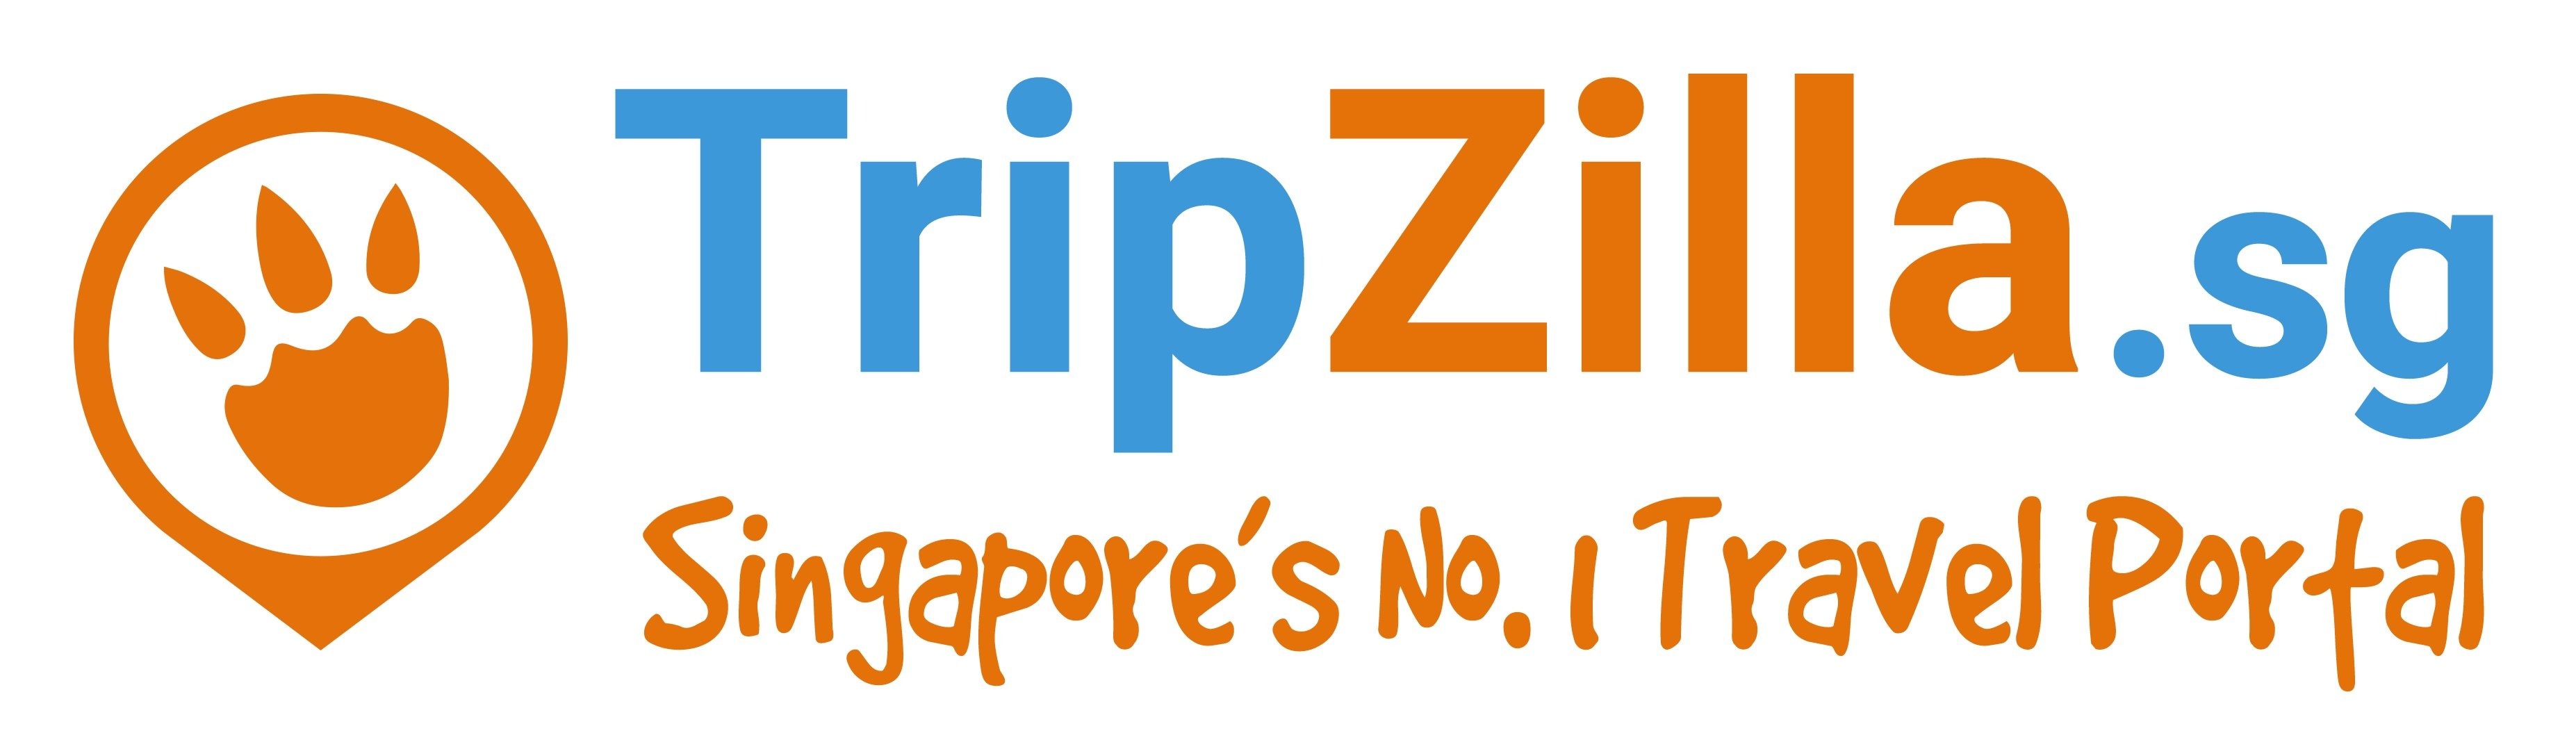 Find Great Travel Promotions in Singapore